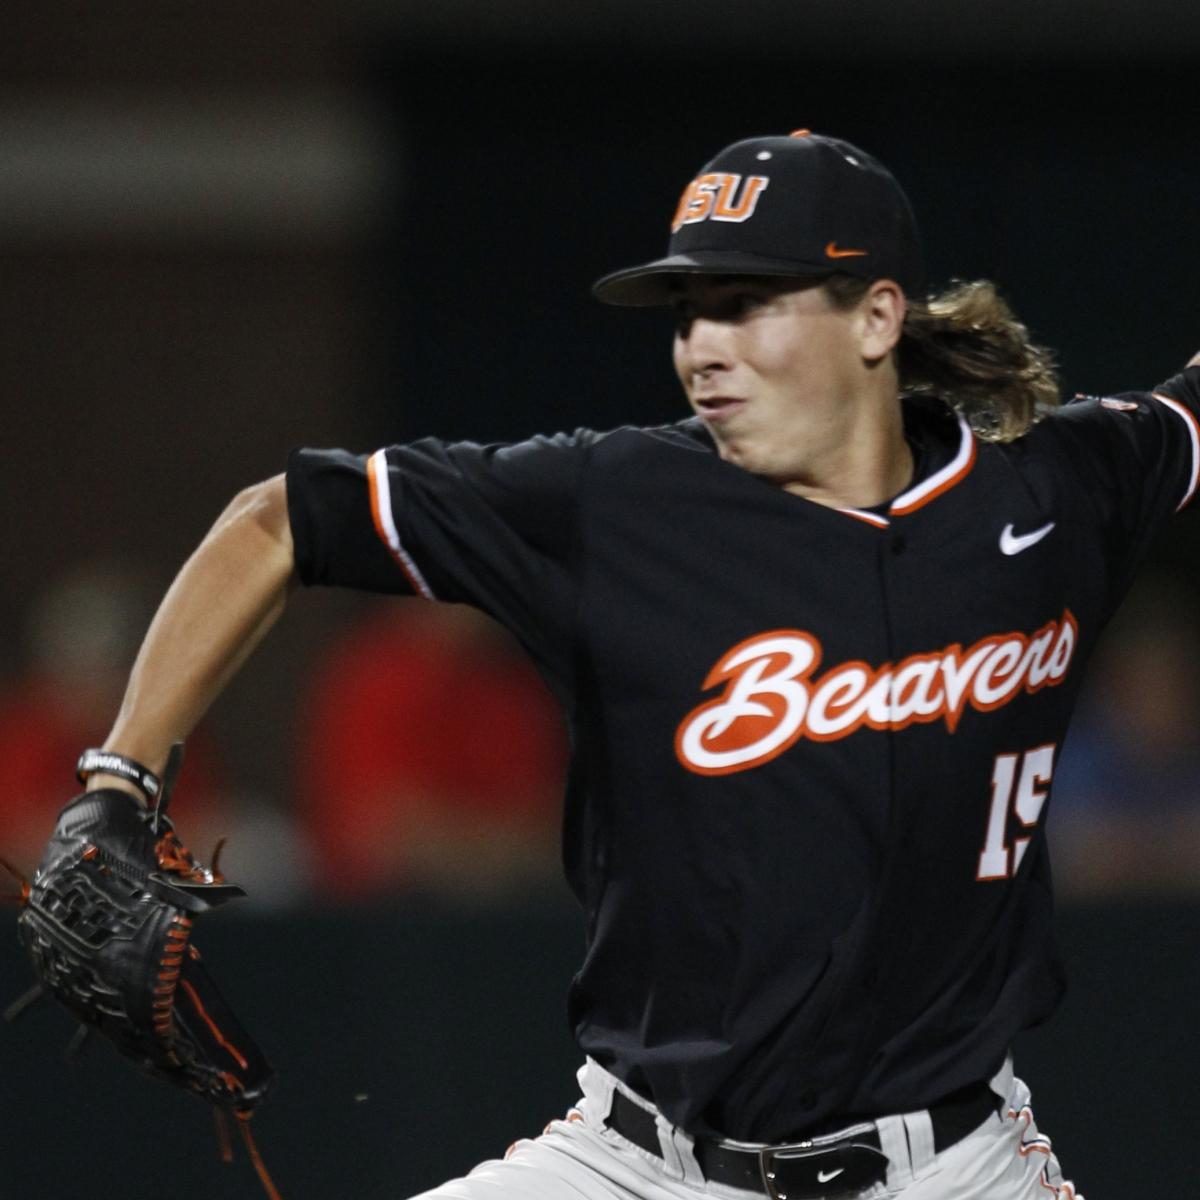 Oregon State Ace Luke Heimlich Not Selected in 2018 MLB Draft